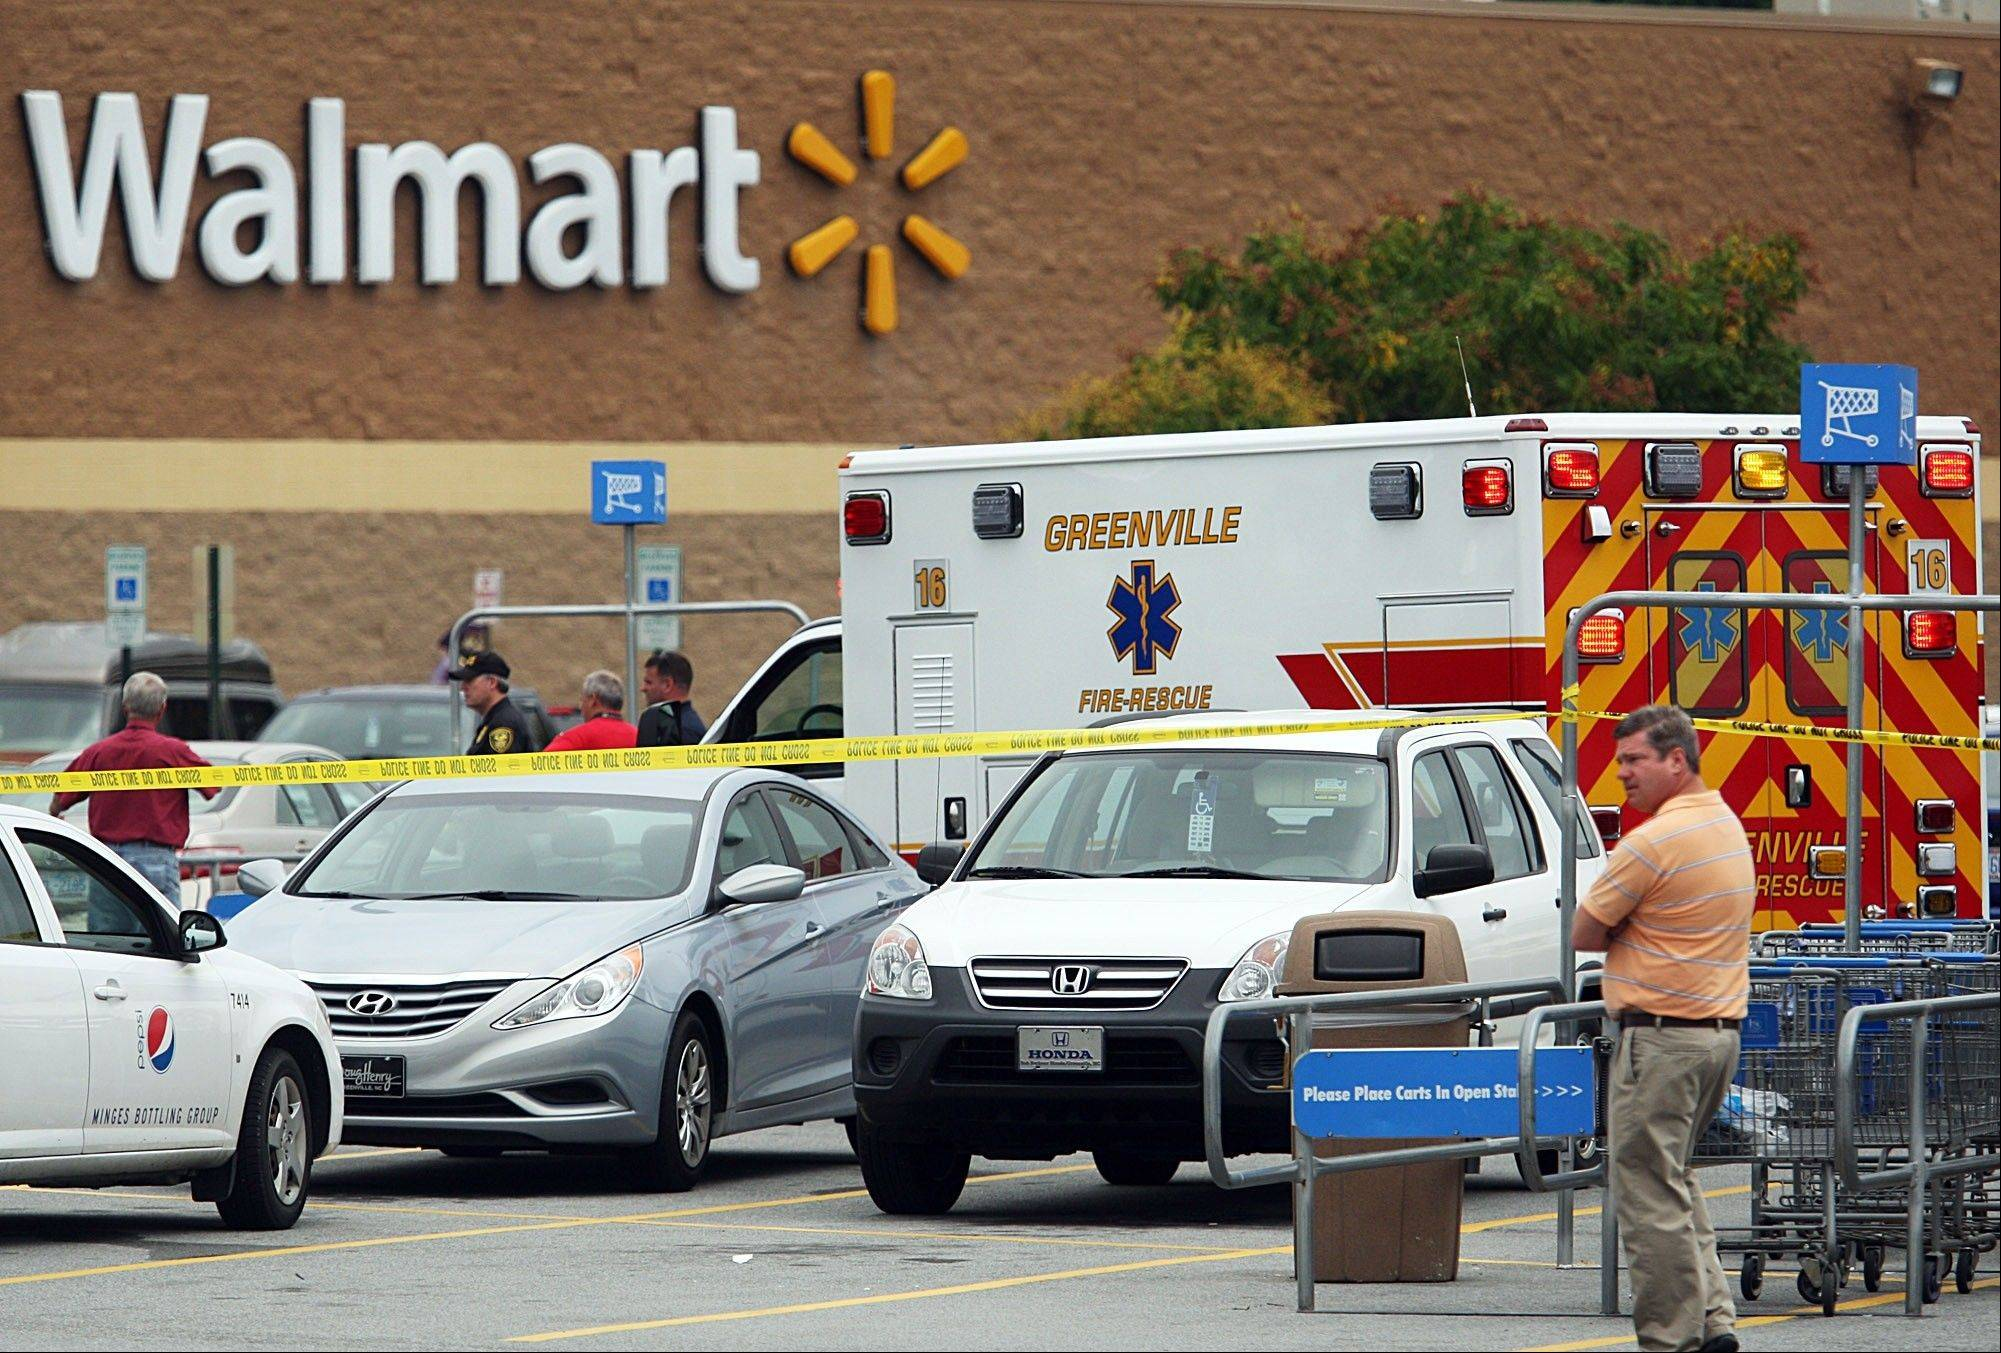 An ambulance sits Friday in the parking lot of a Wal-mart in Greenville, N.C.